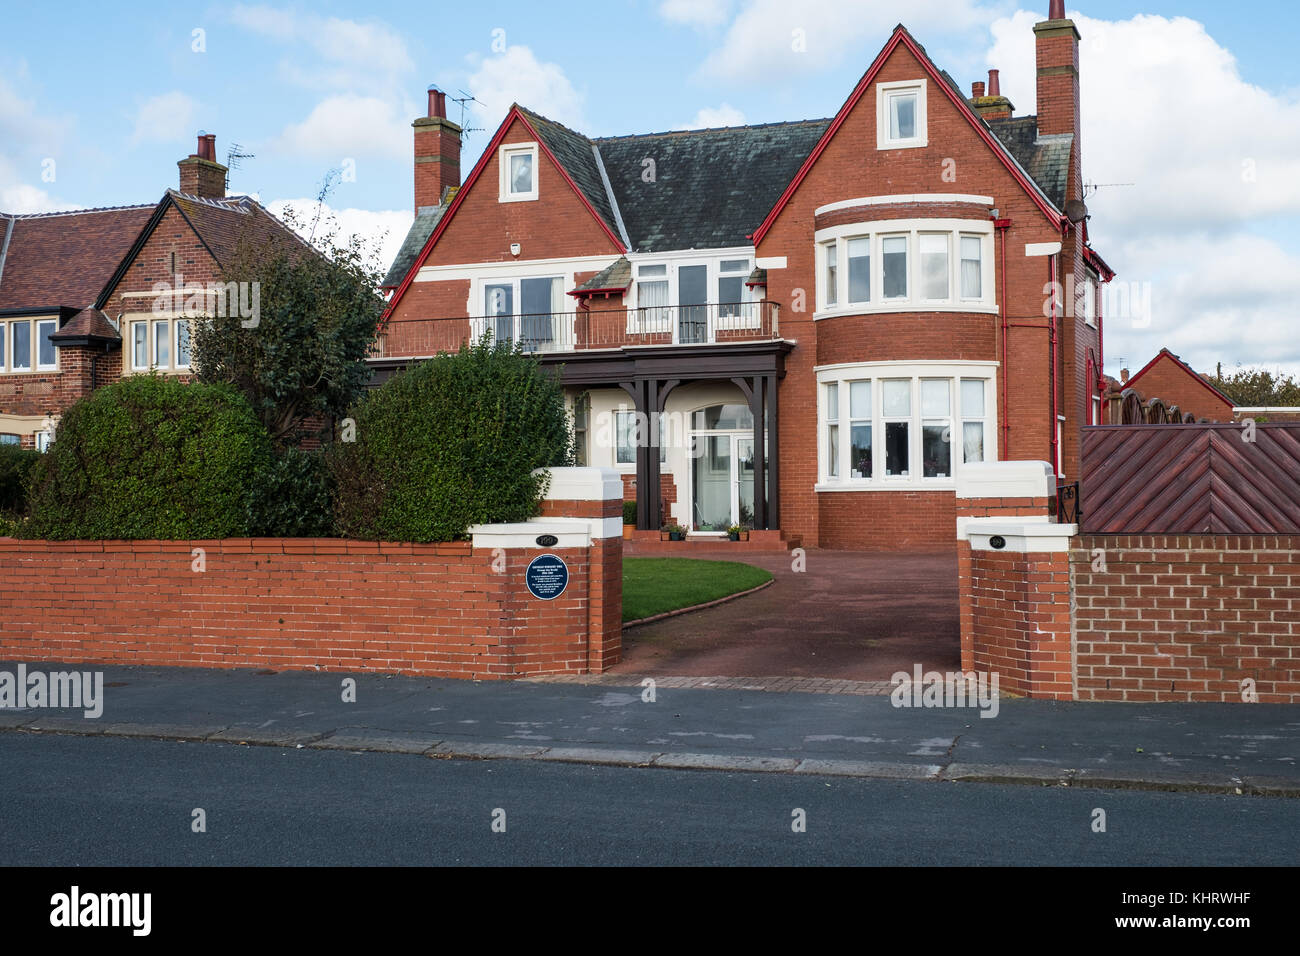 The house at Lytham St Annes previously owned by the famous George Formby OBE. - Stock Image